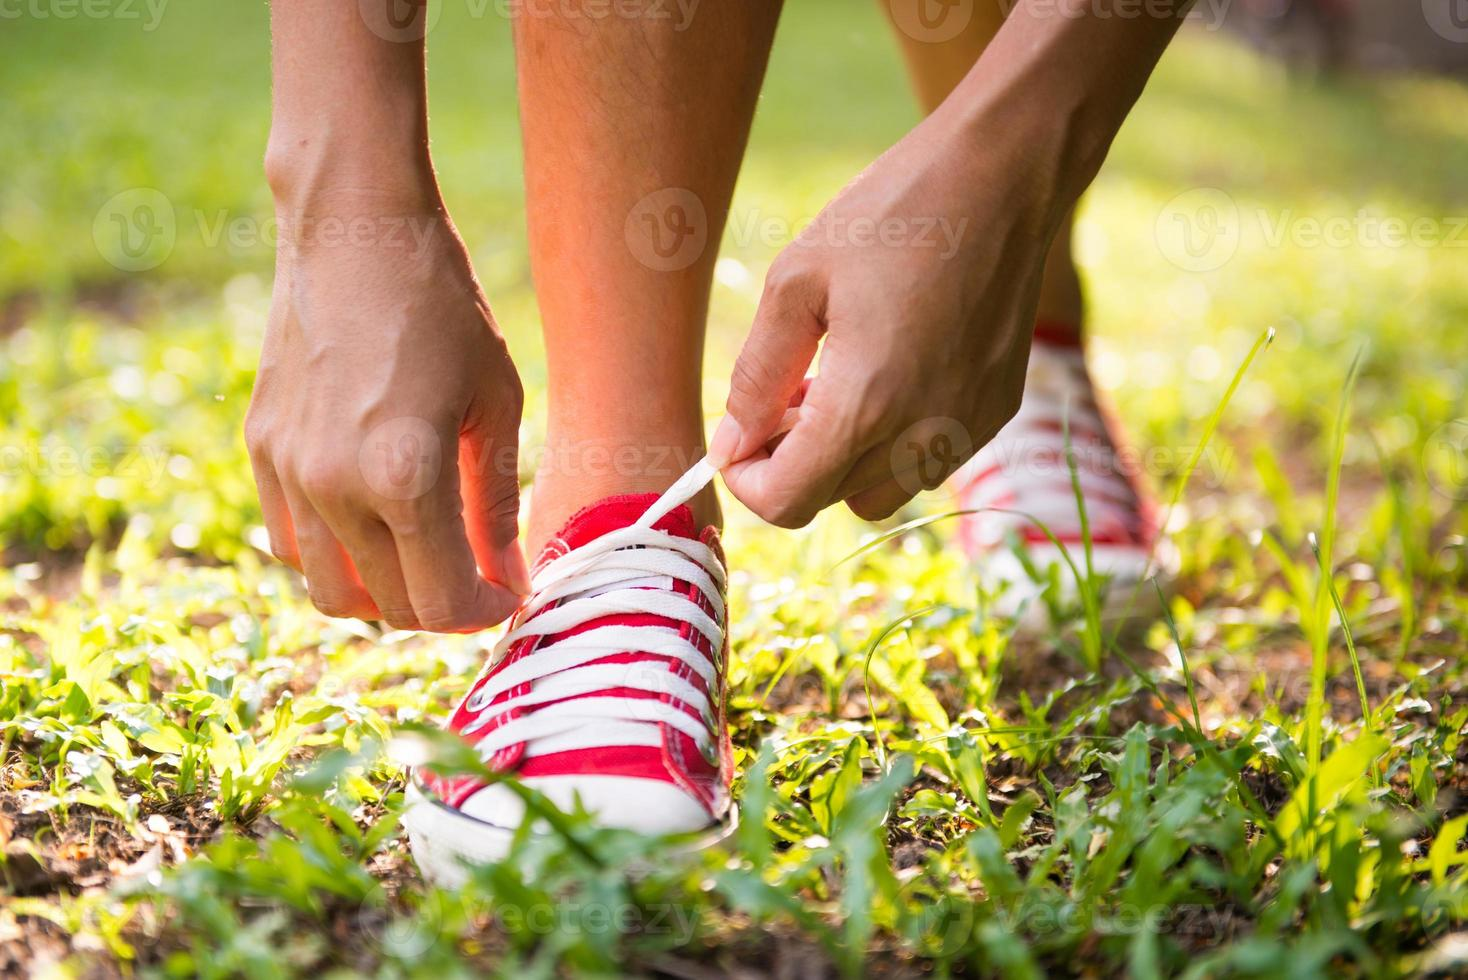 woman lacing her shoes before jogging in park photo